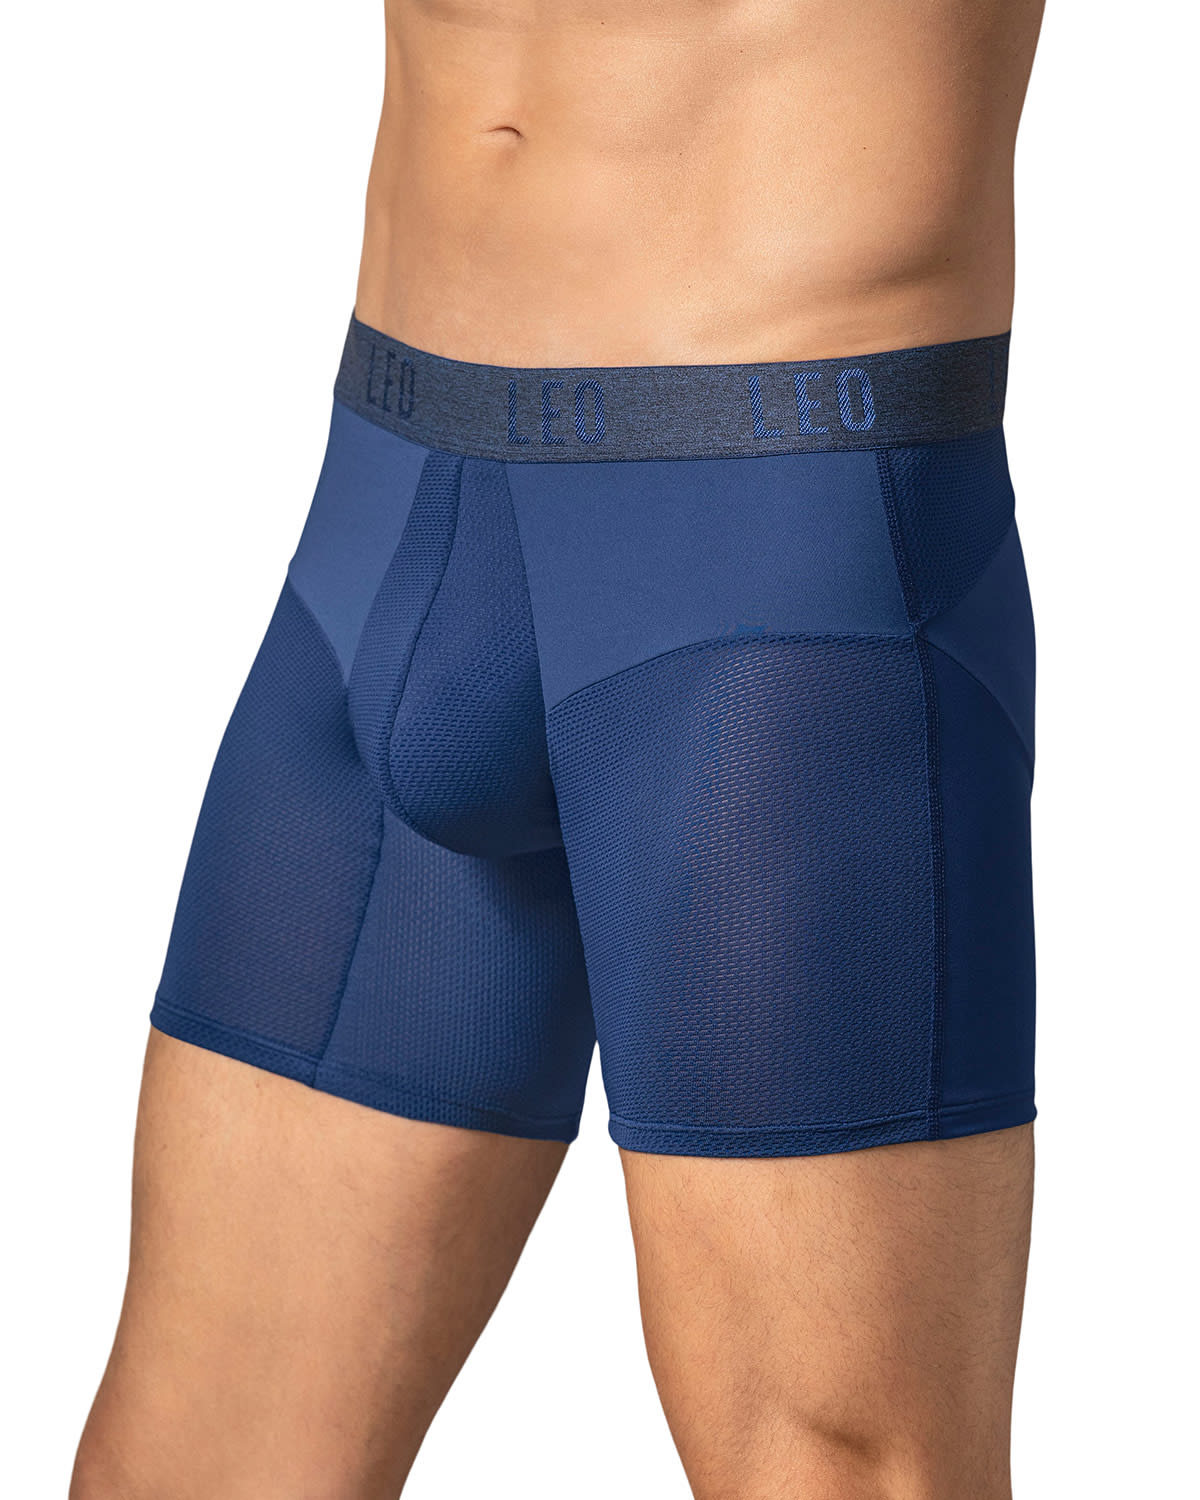 Eco-Friendly Short Boxer Brief made of Recycled Plastic Bottles